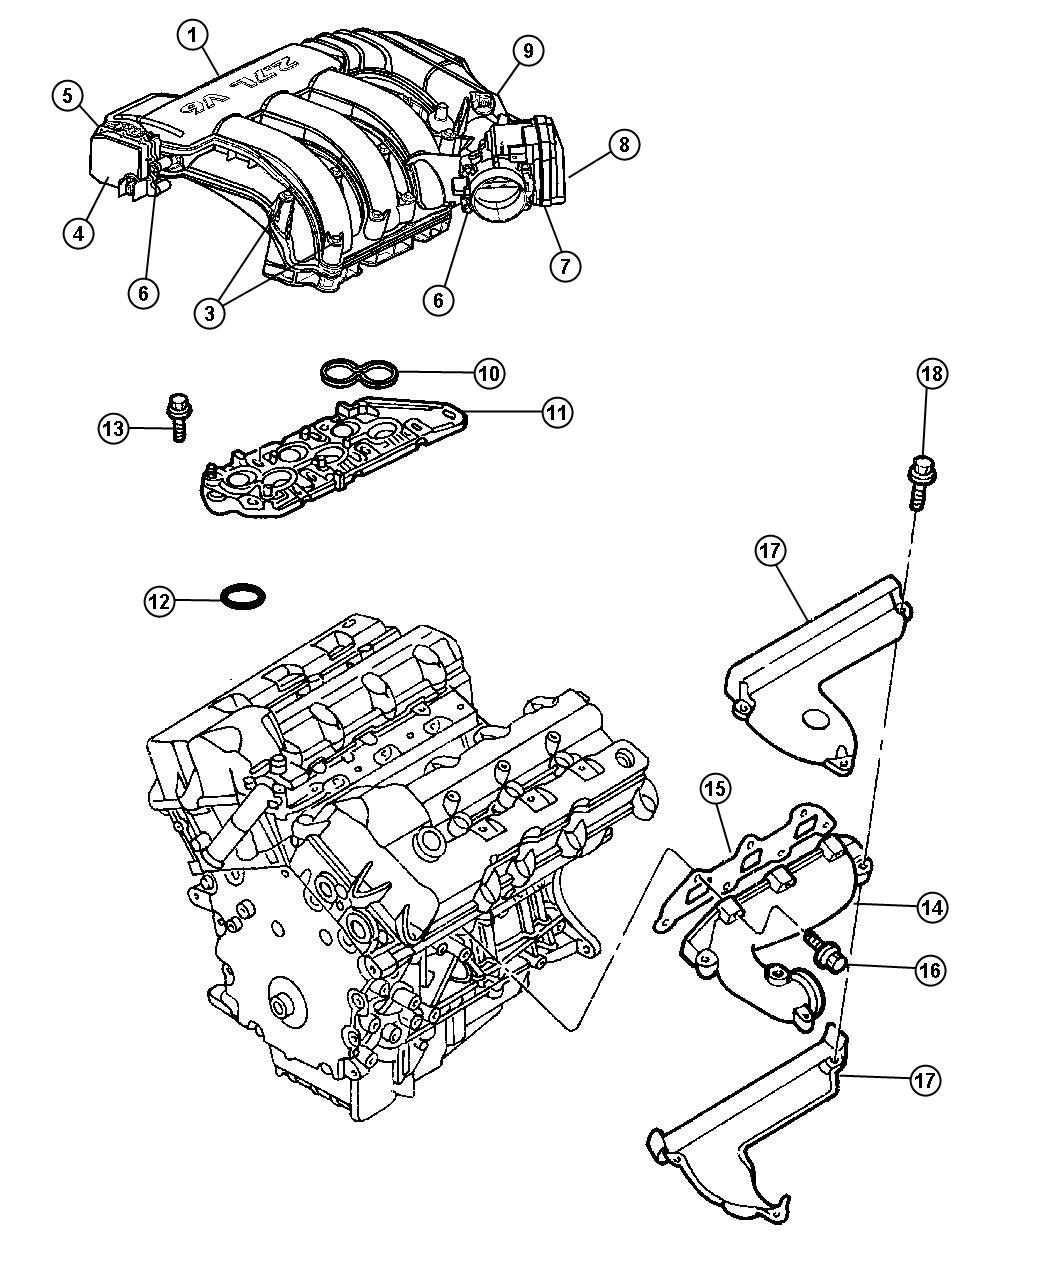 Wireless inter wiring diagram together with further en likewise 1967 mustang fuse box diagram furthermore dodge